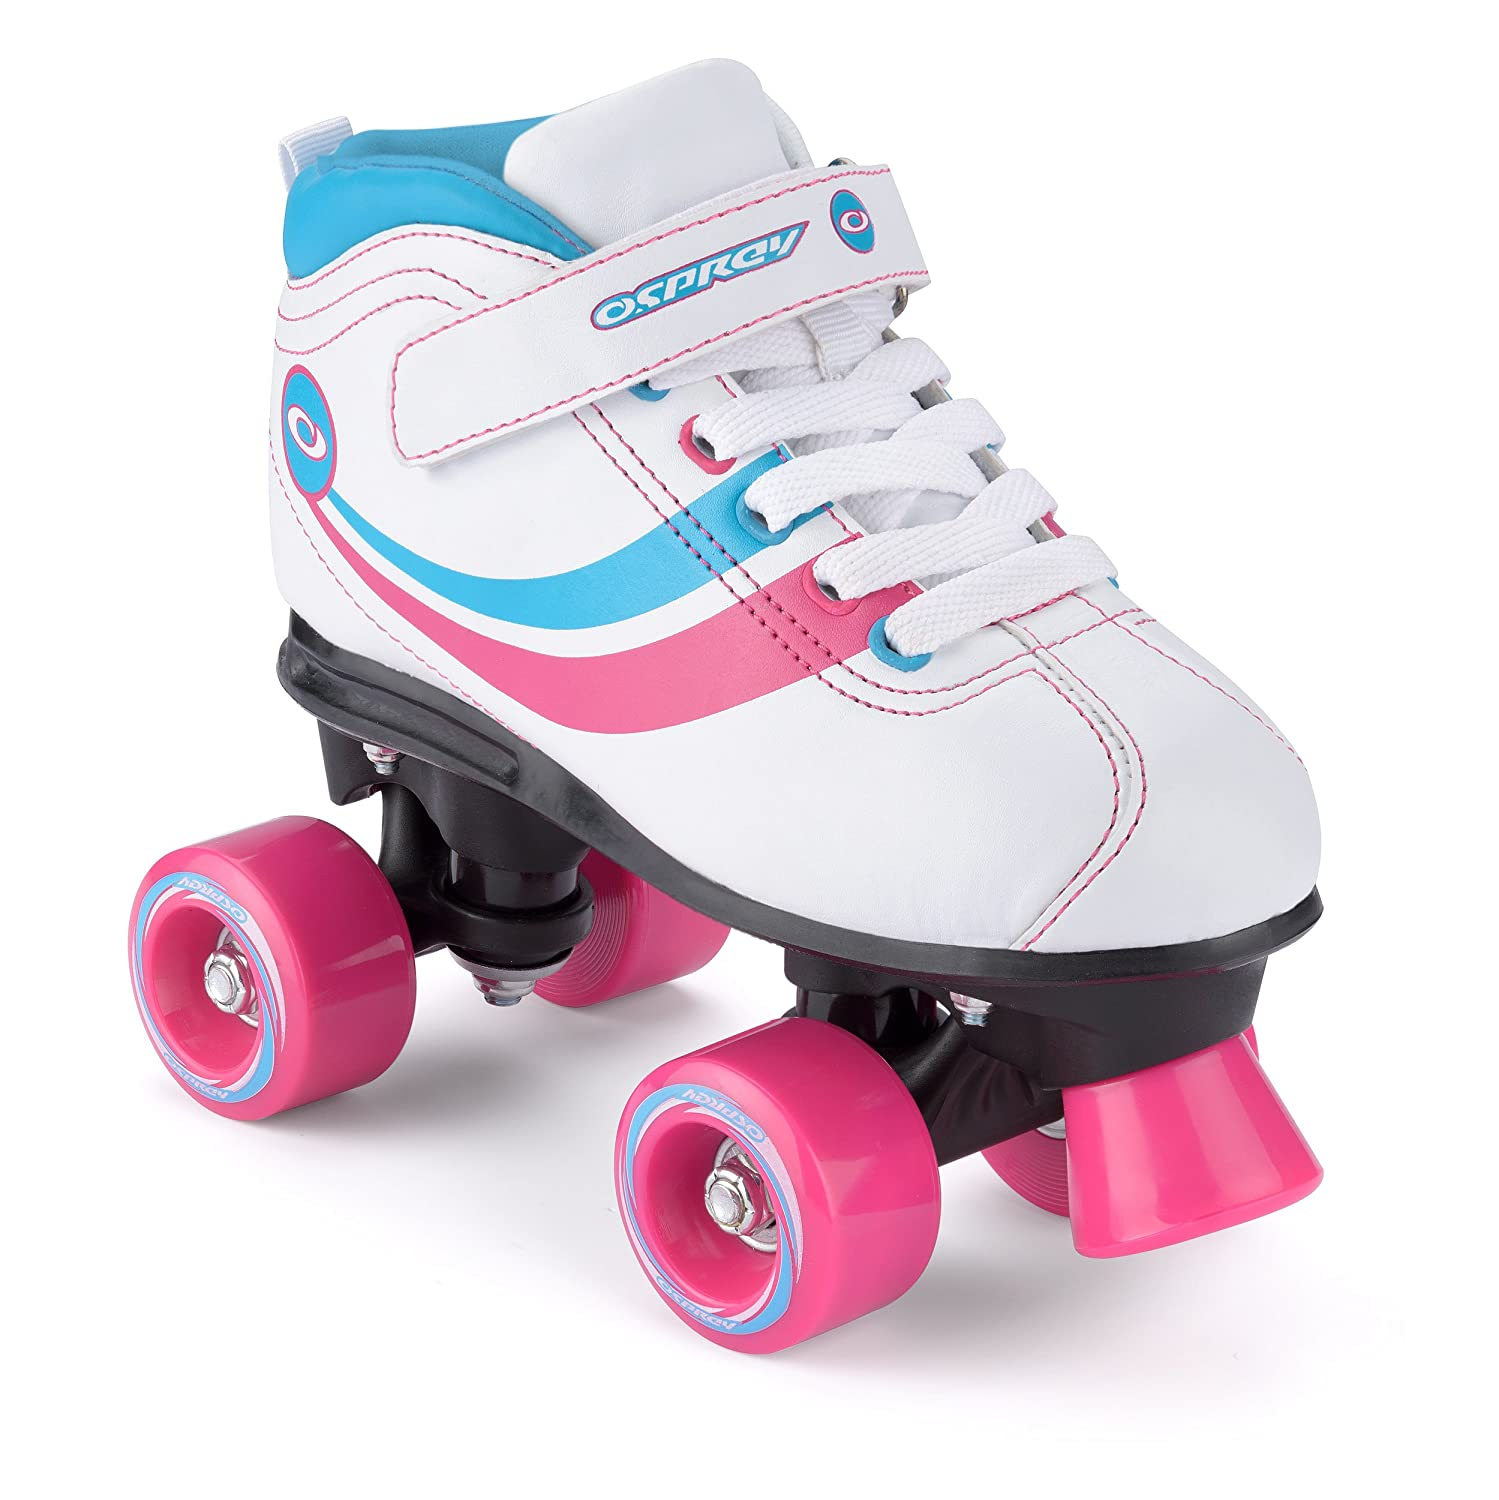 Osprey Chica Patines Retro Quad y Disco, para niñ as y Damas para niñas y Damas TY5355